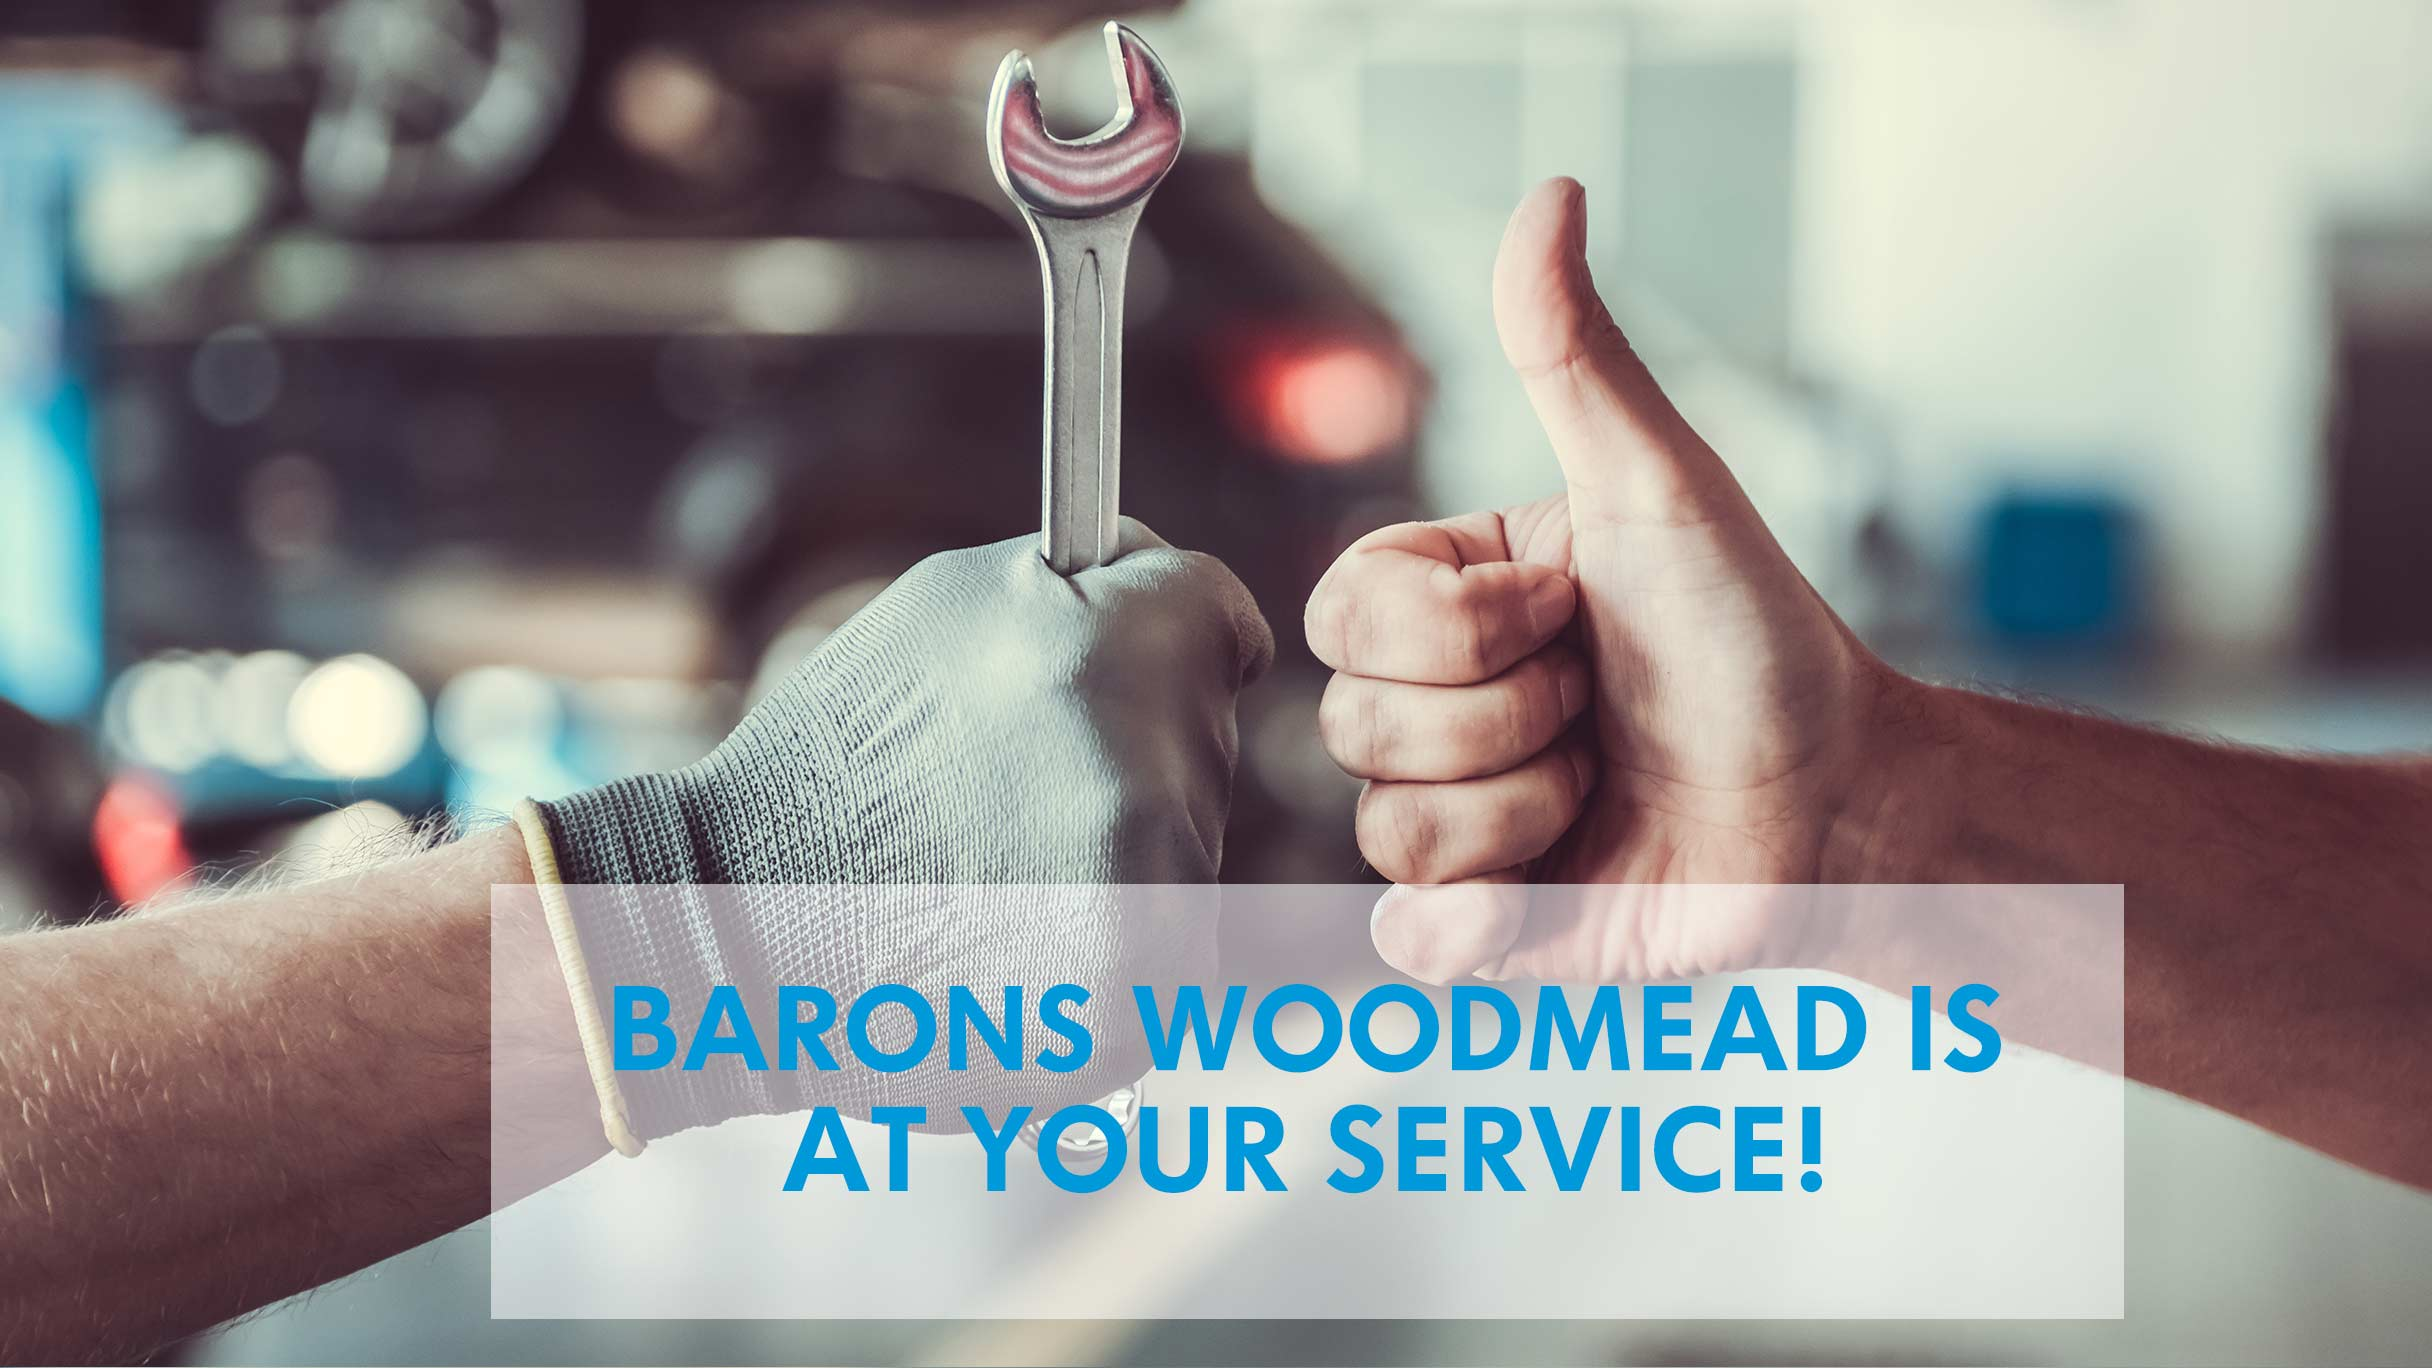 Service your car at Barons Woodmead